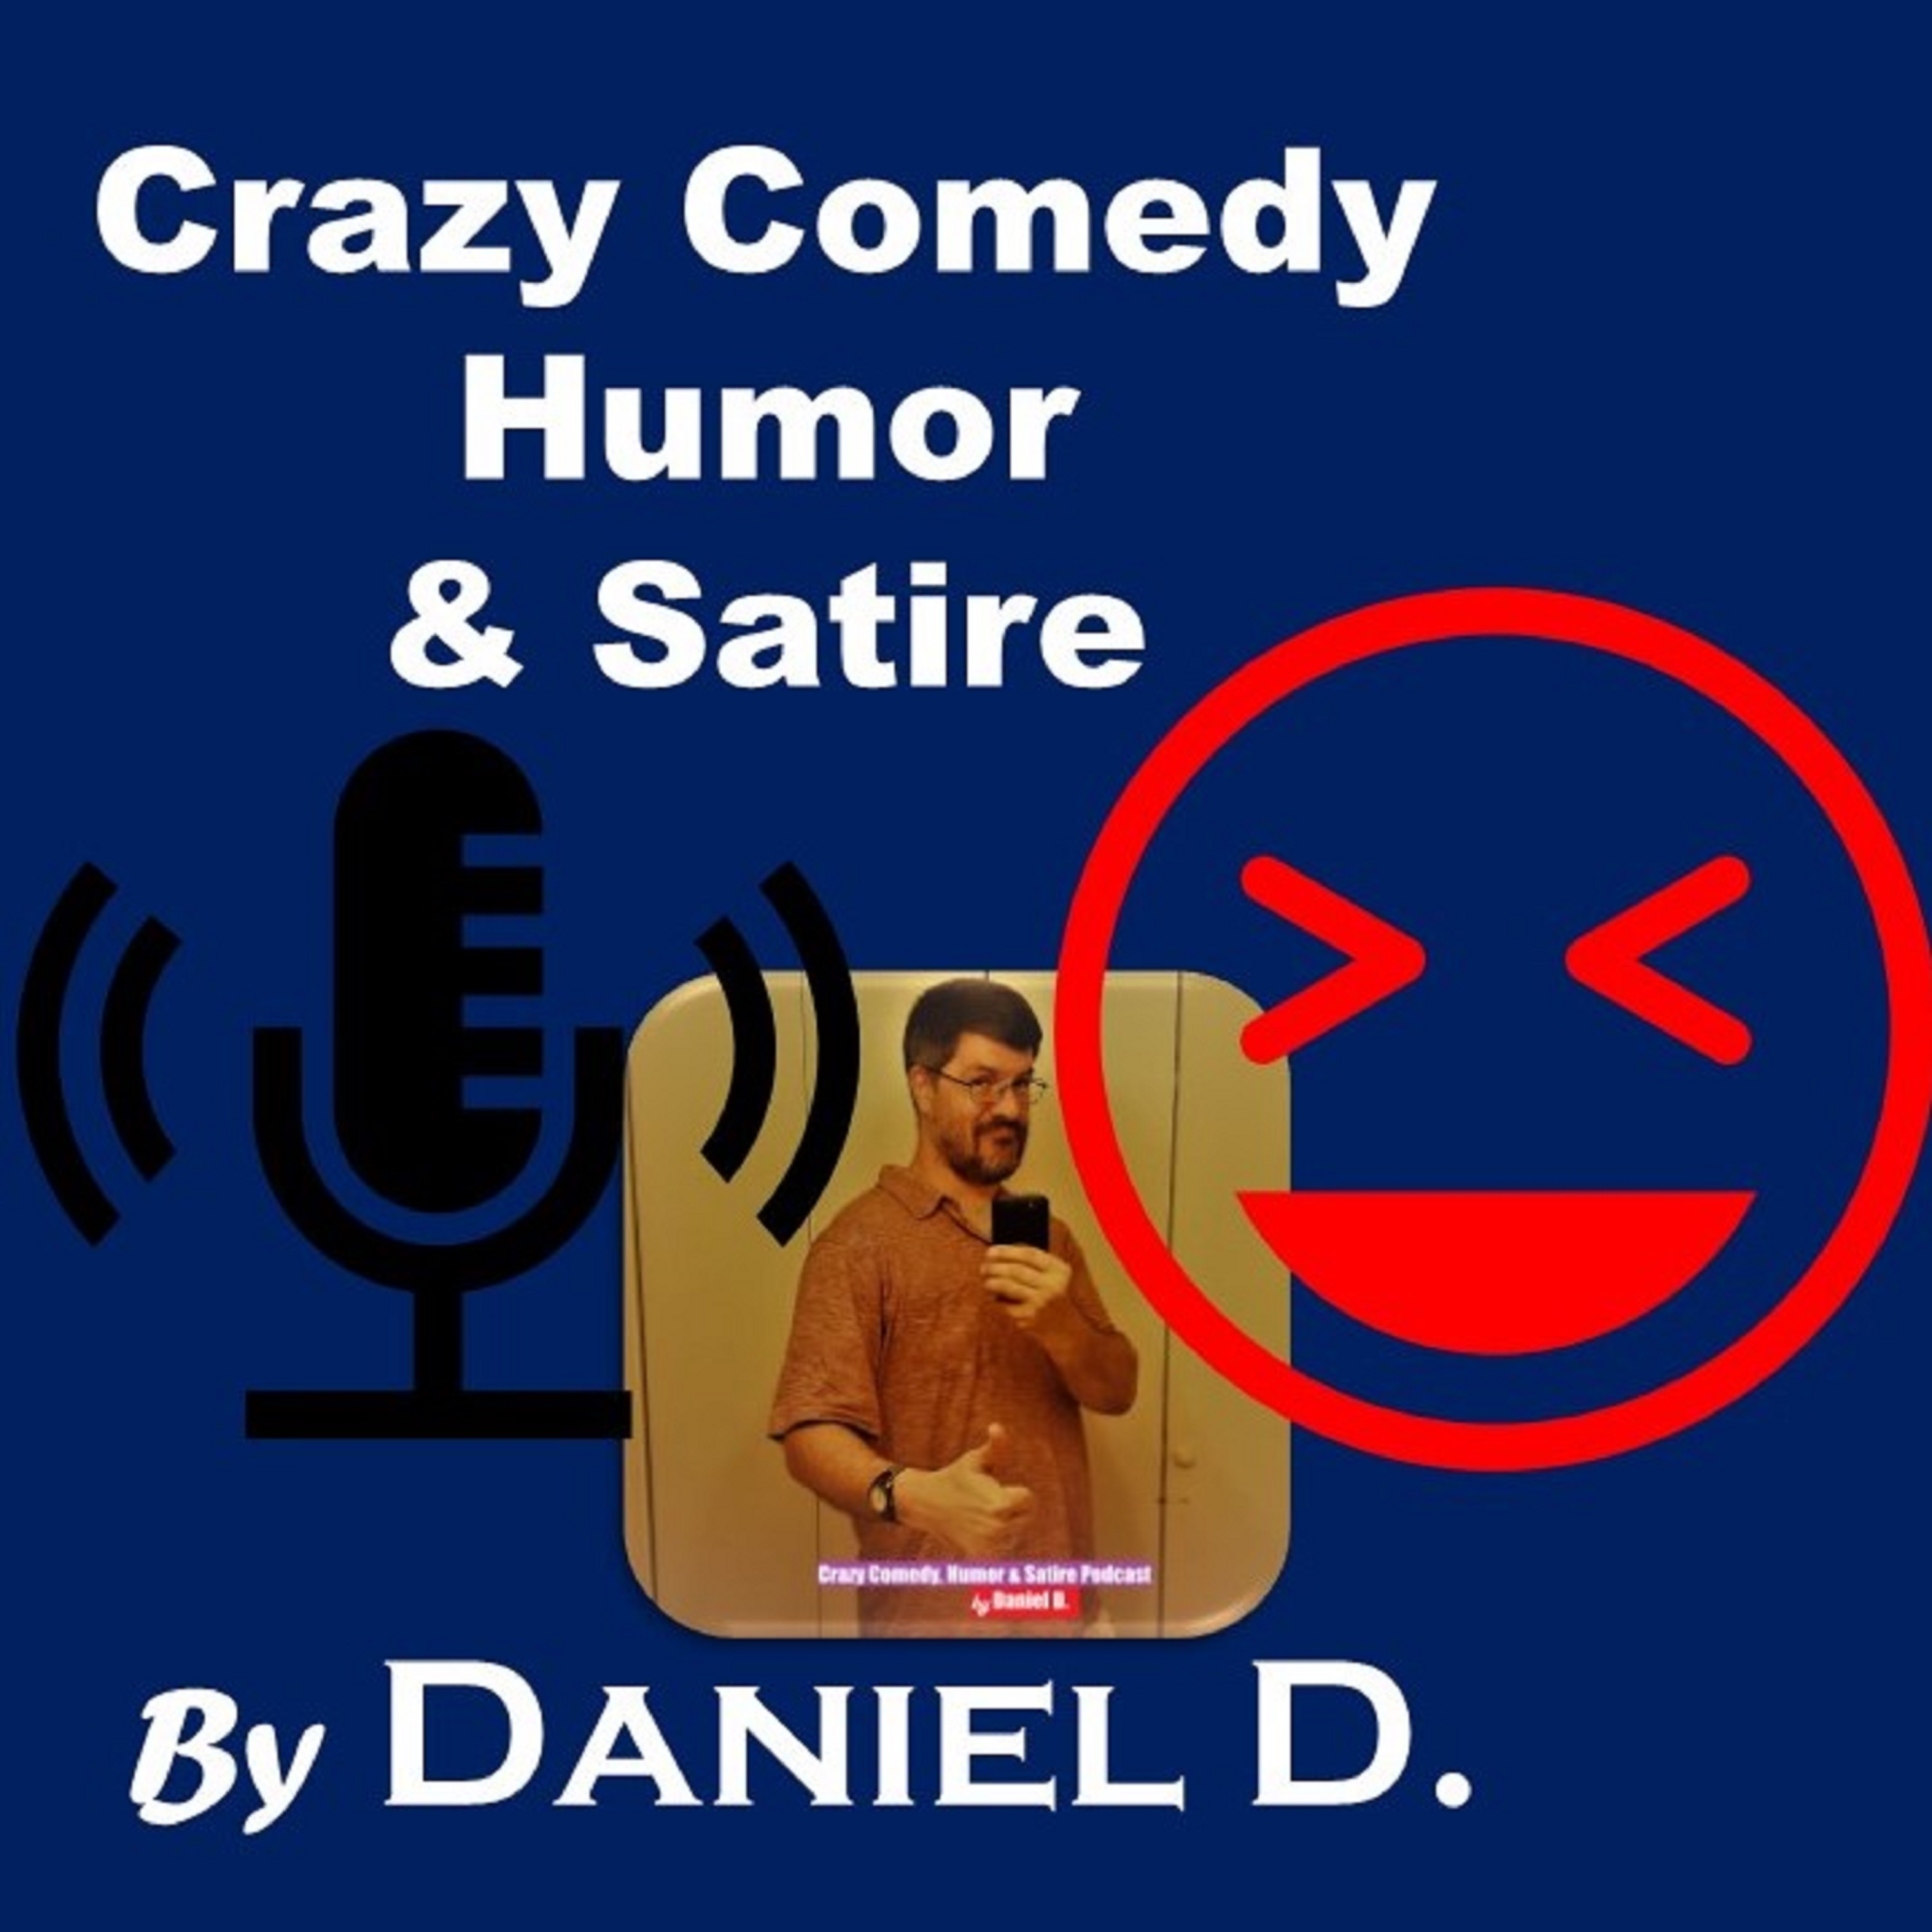 Artwork for Episode 7 of The Crazy Comedy Humor & Satire Podcast